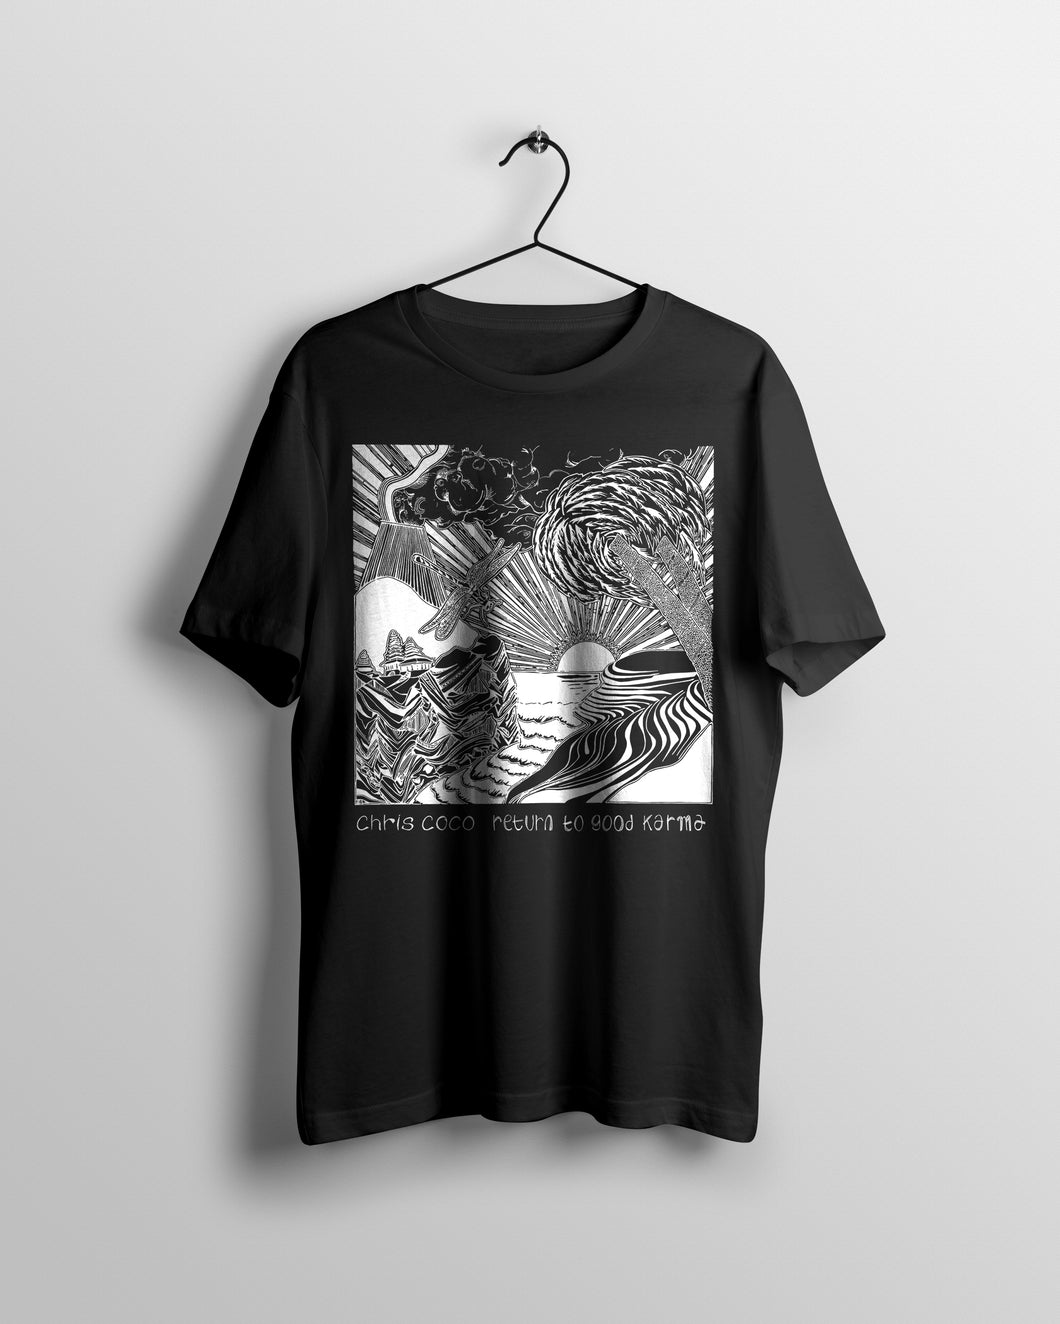 Return to Good Karma - (unisex t-shirt)